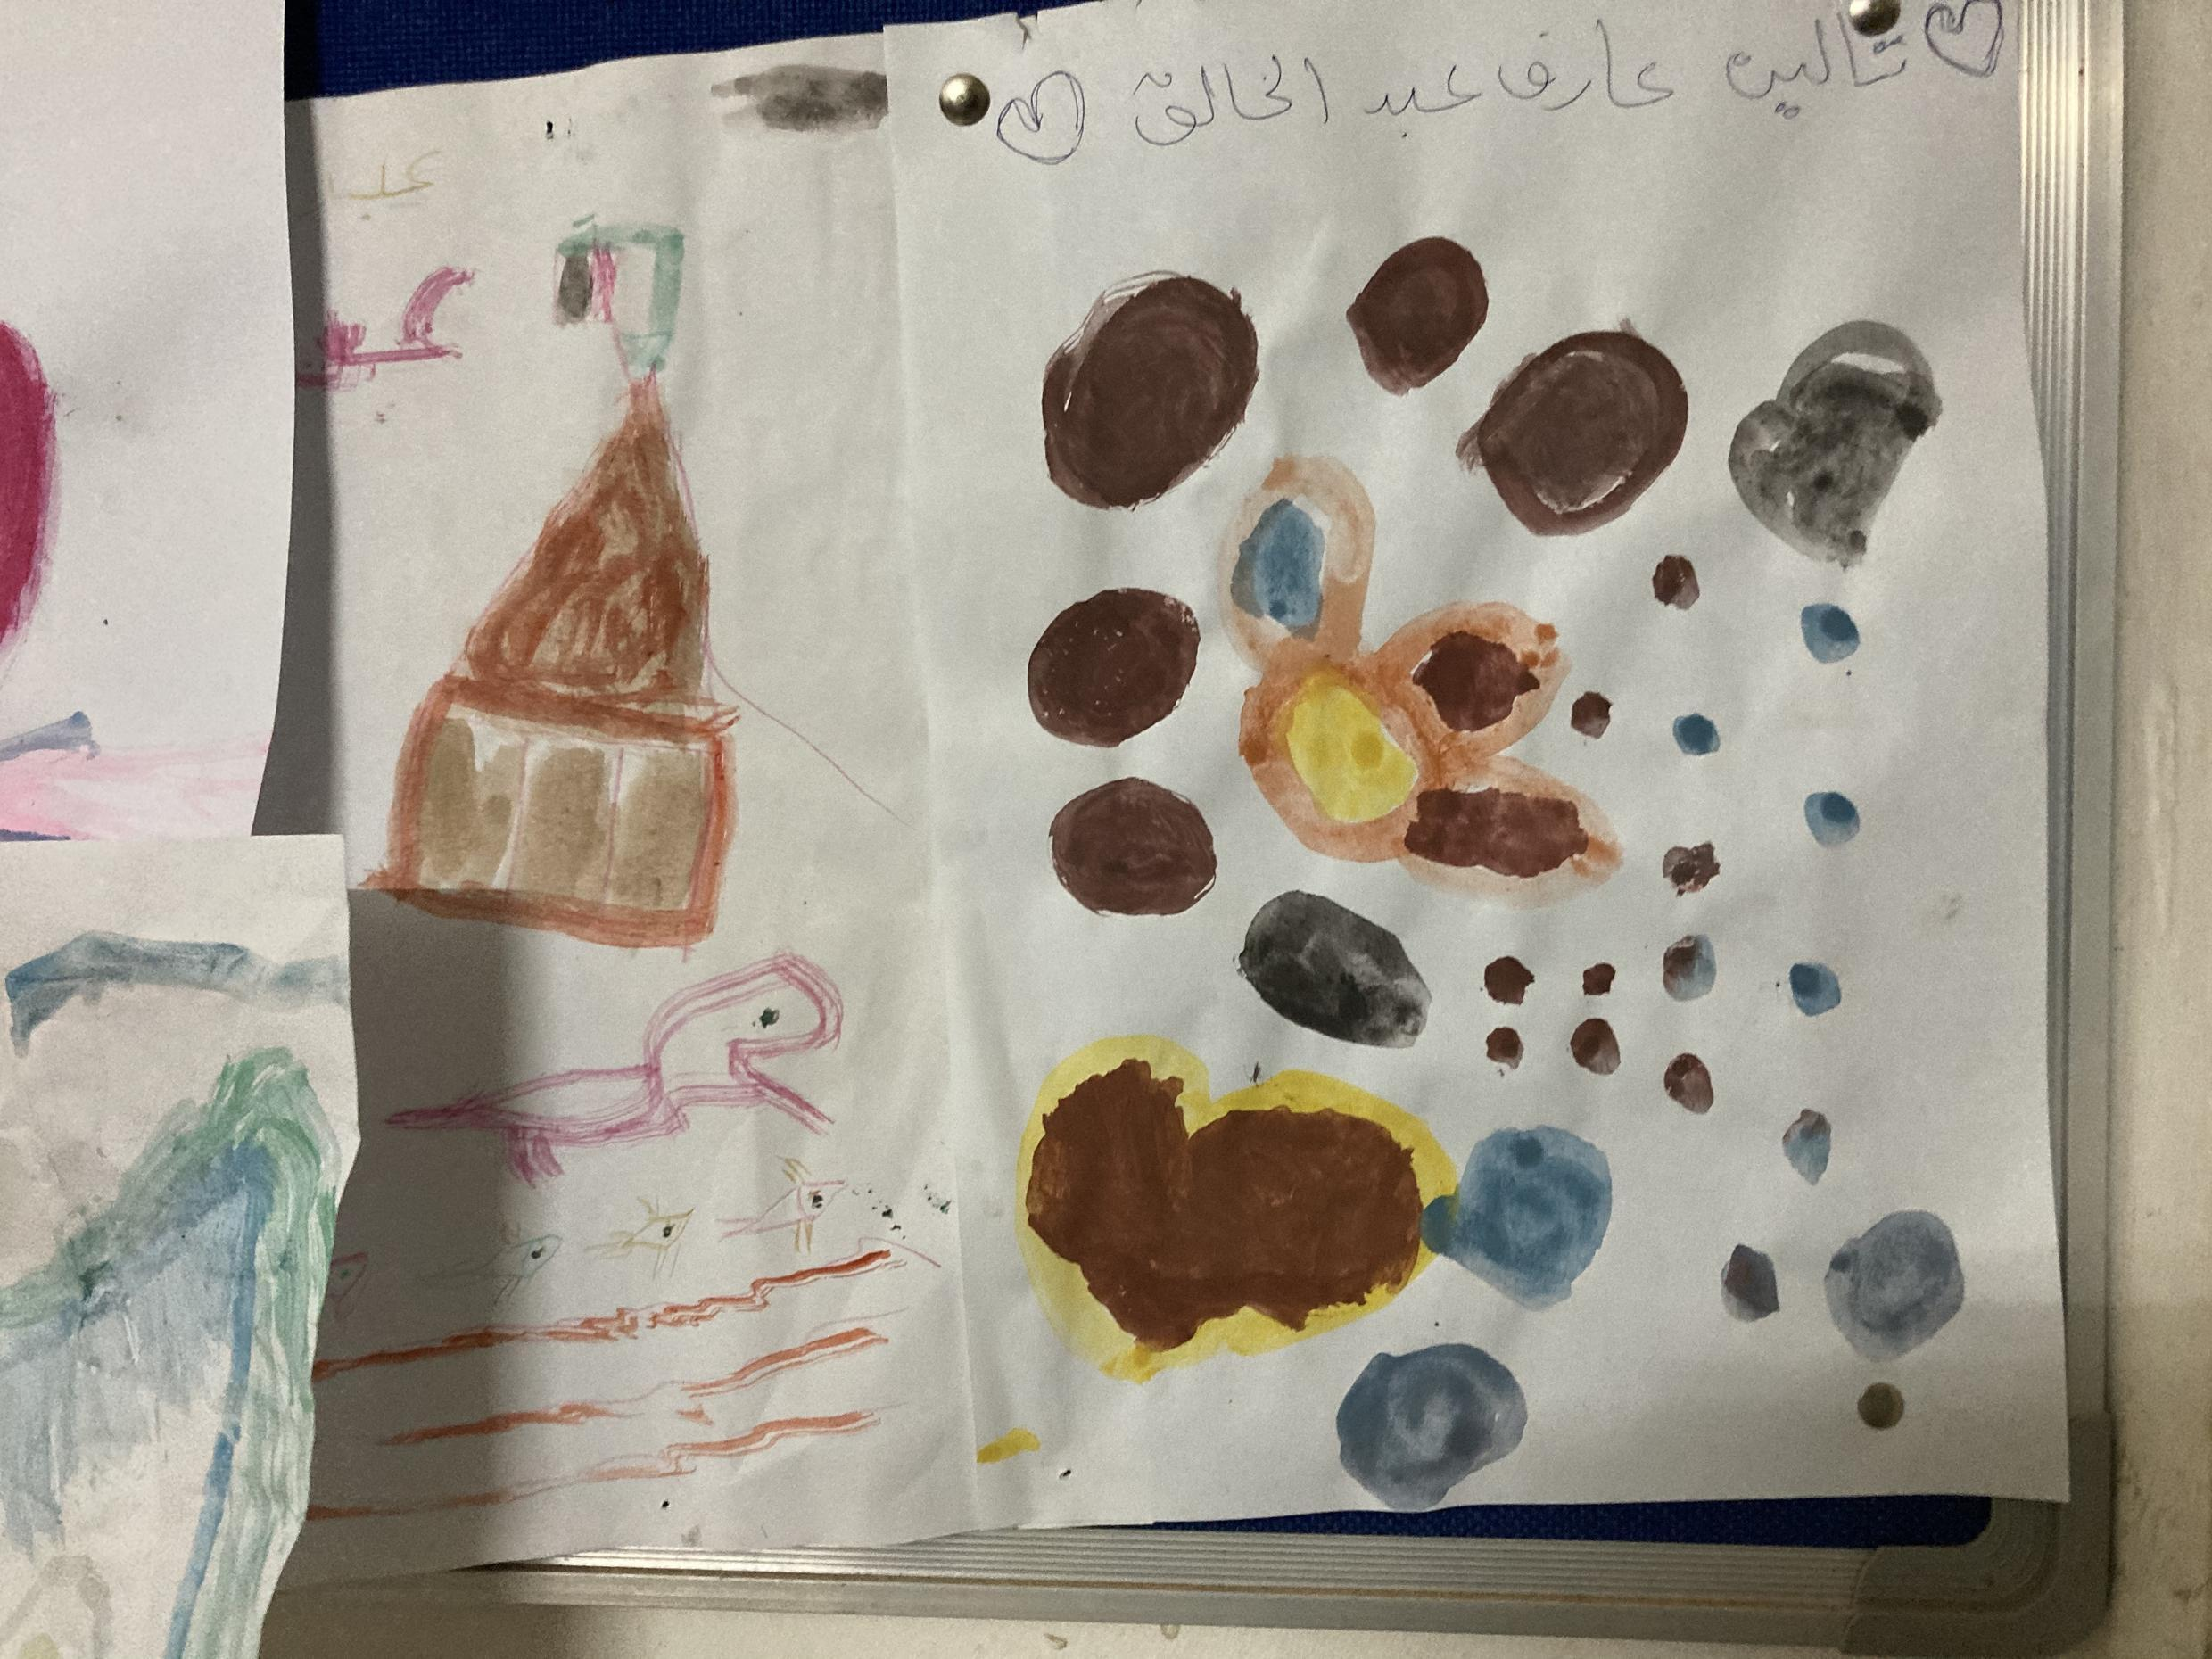 Artwork done by children as part of their therapy at SEEMA after witnessing or experiencing violence.